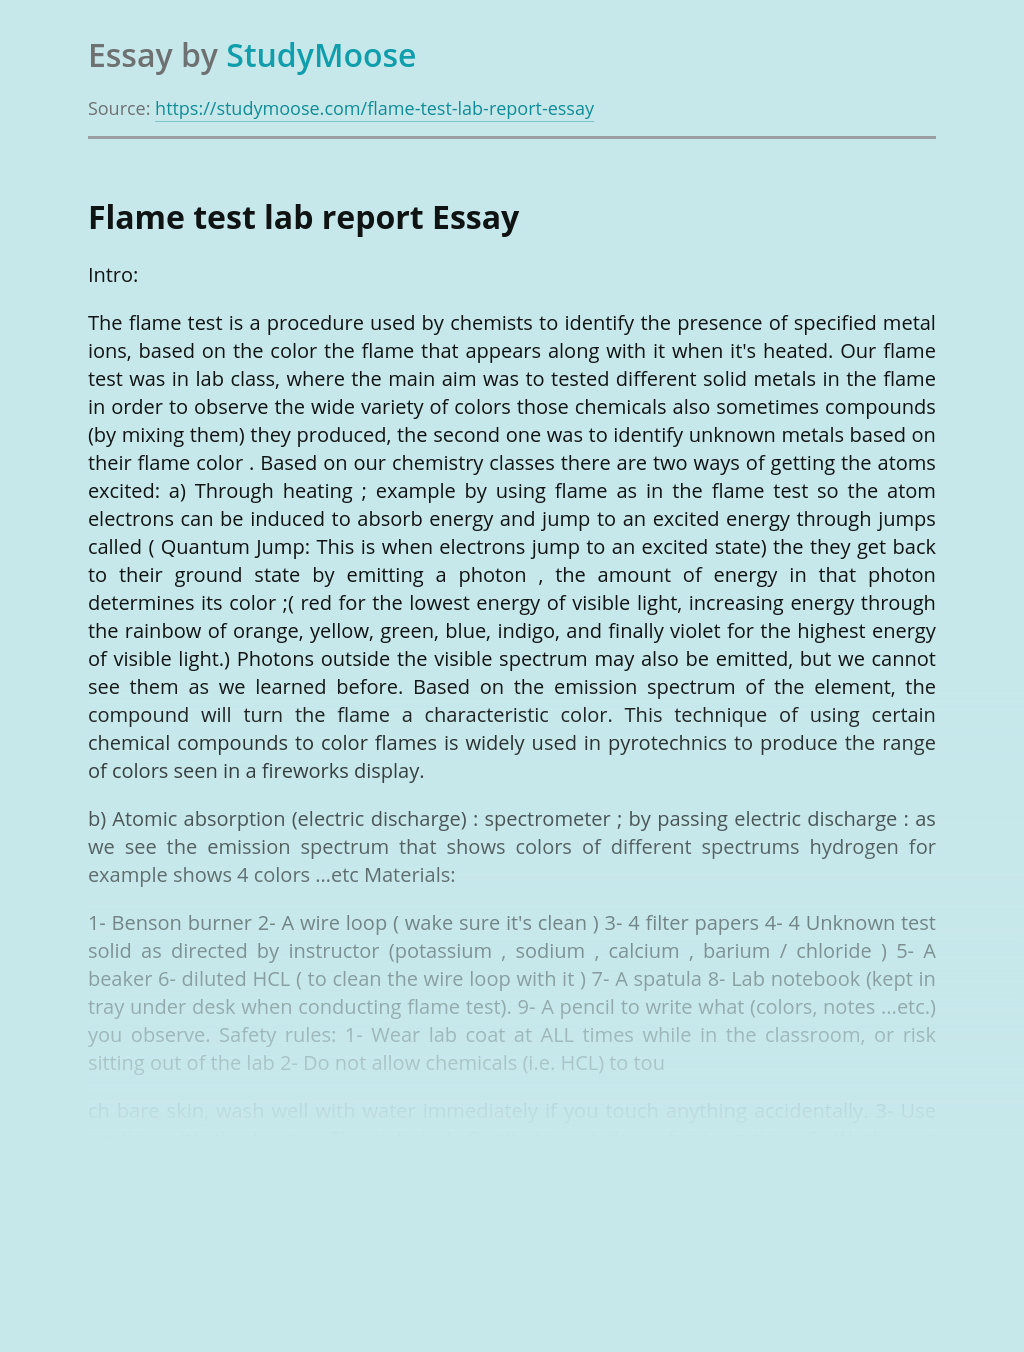 Flame test lab report